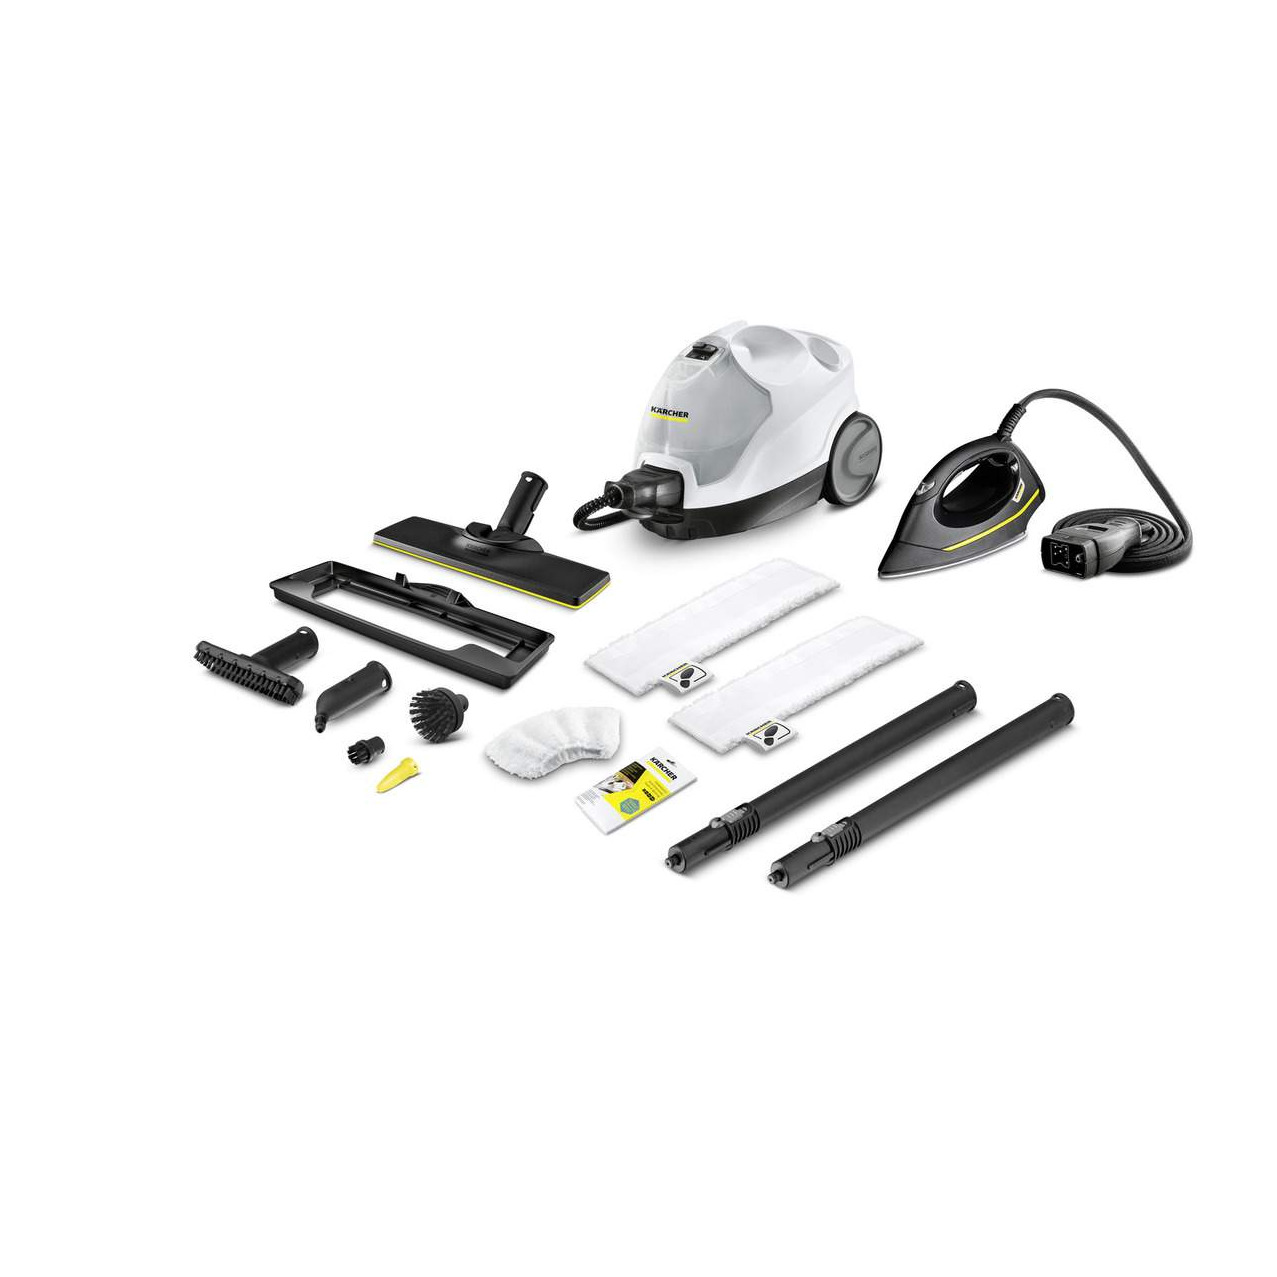 SC 4 EASYFIX PREMIUM IRON KIT (WHITE)